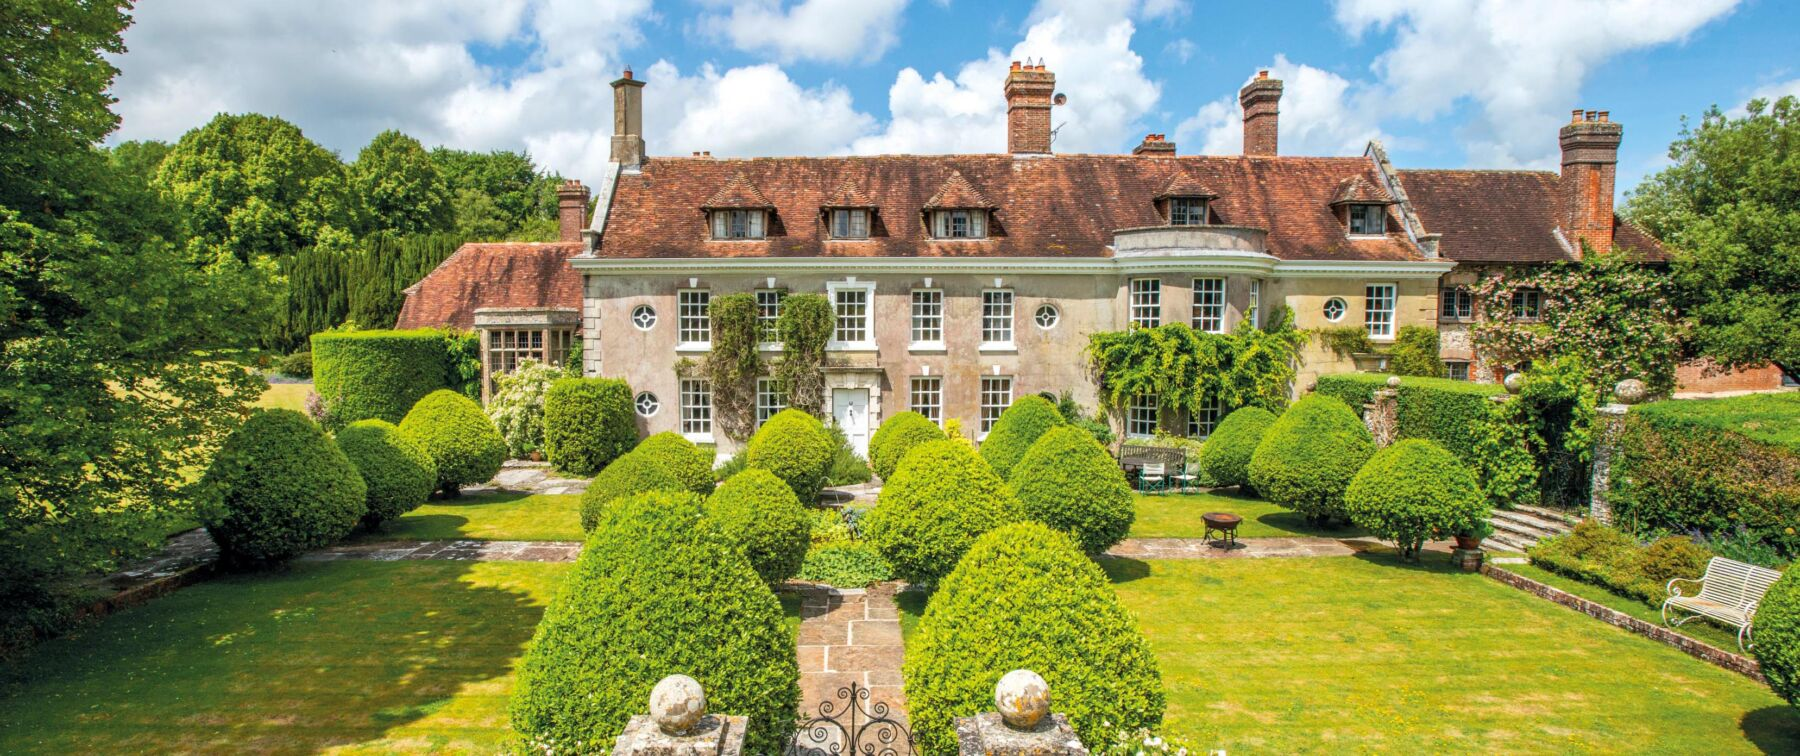 dorset property west woodyates manor knight frank